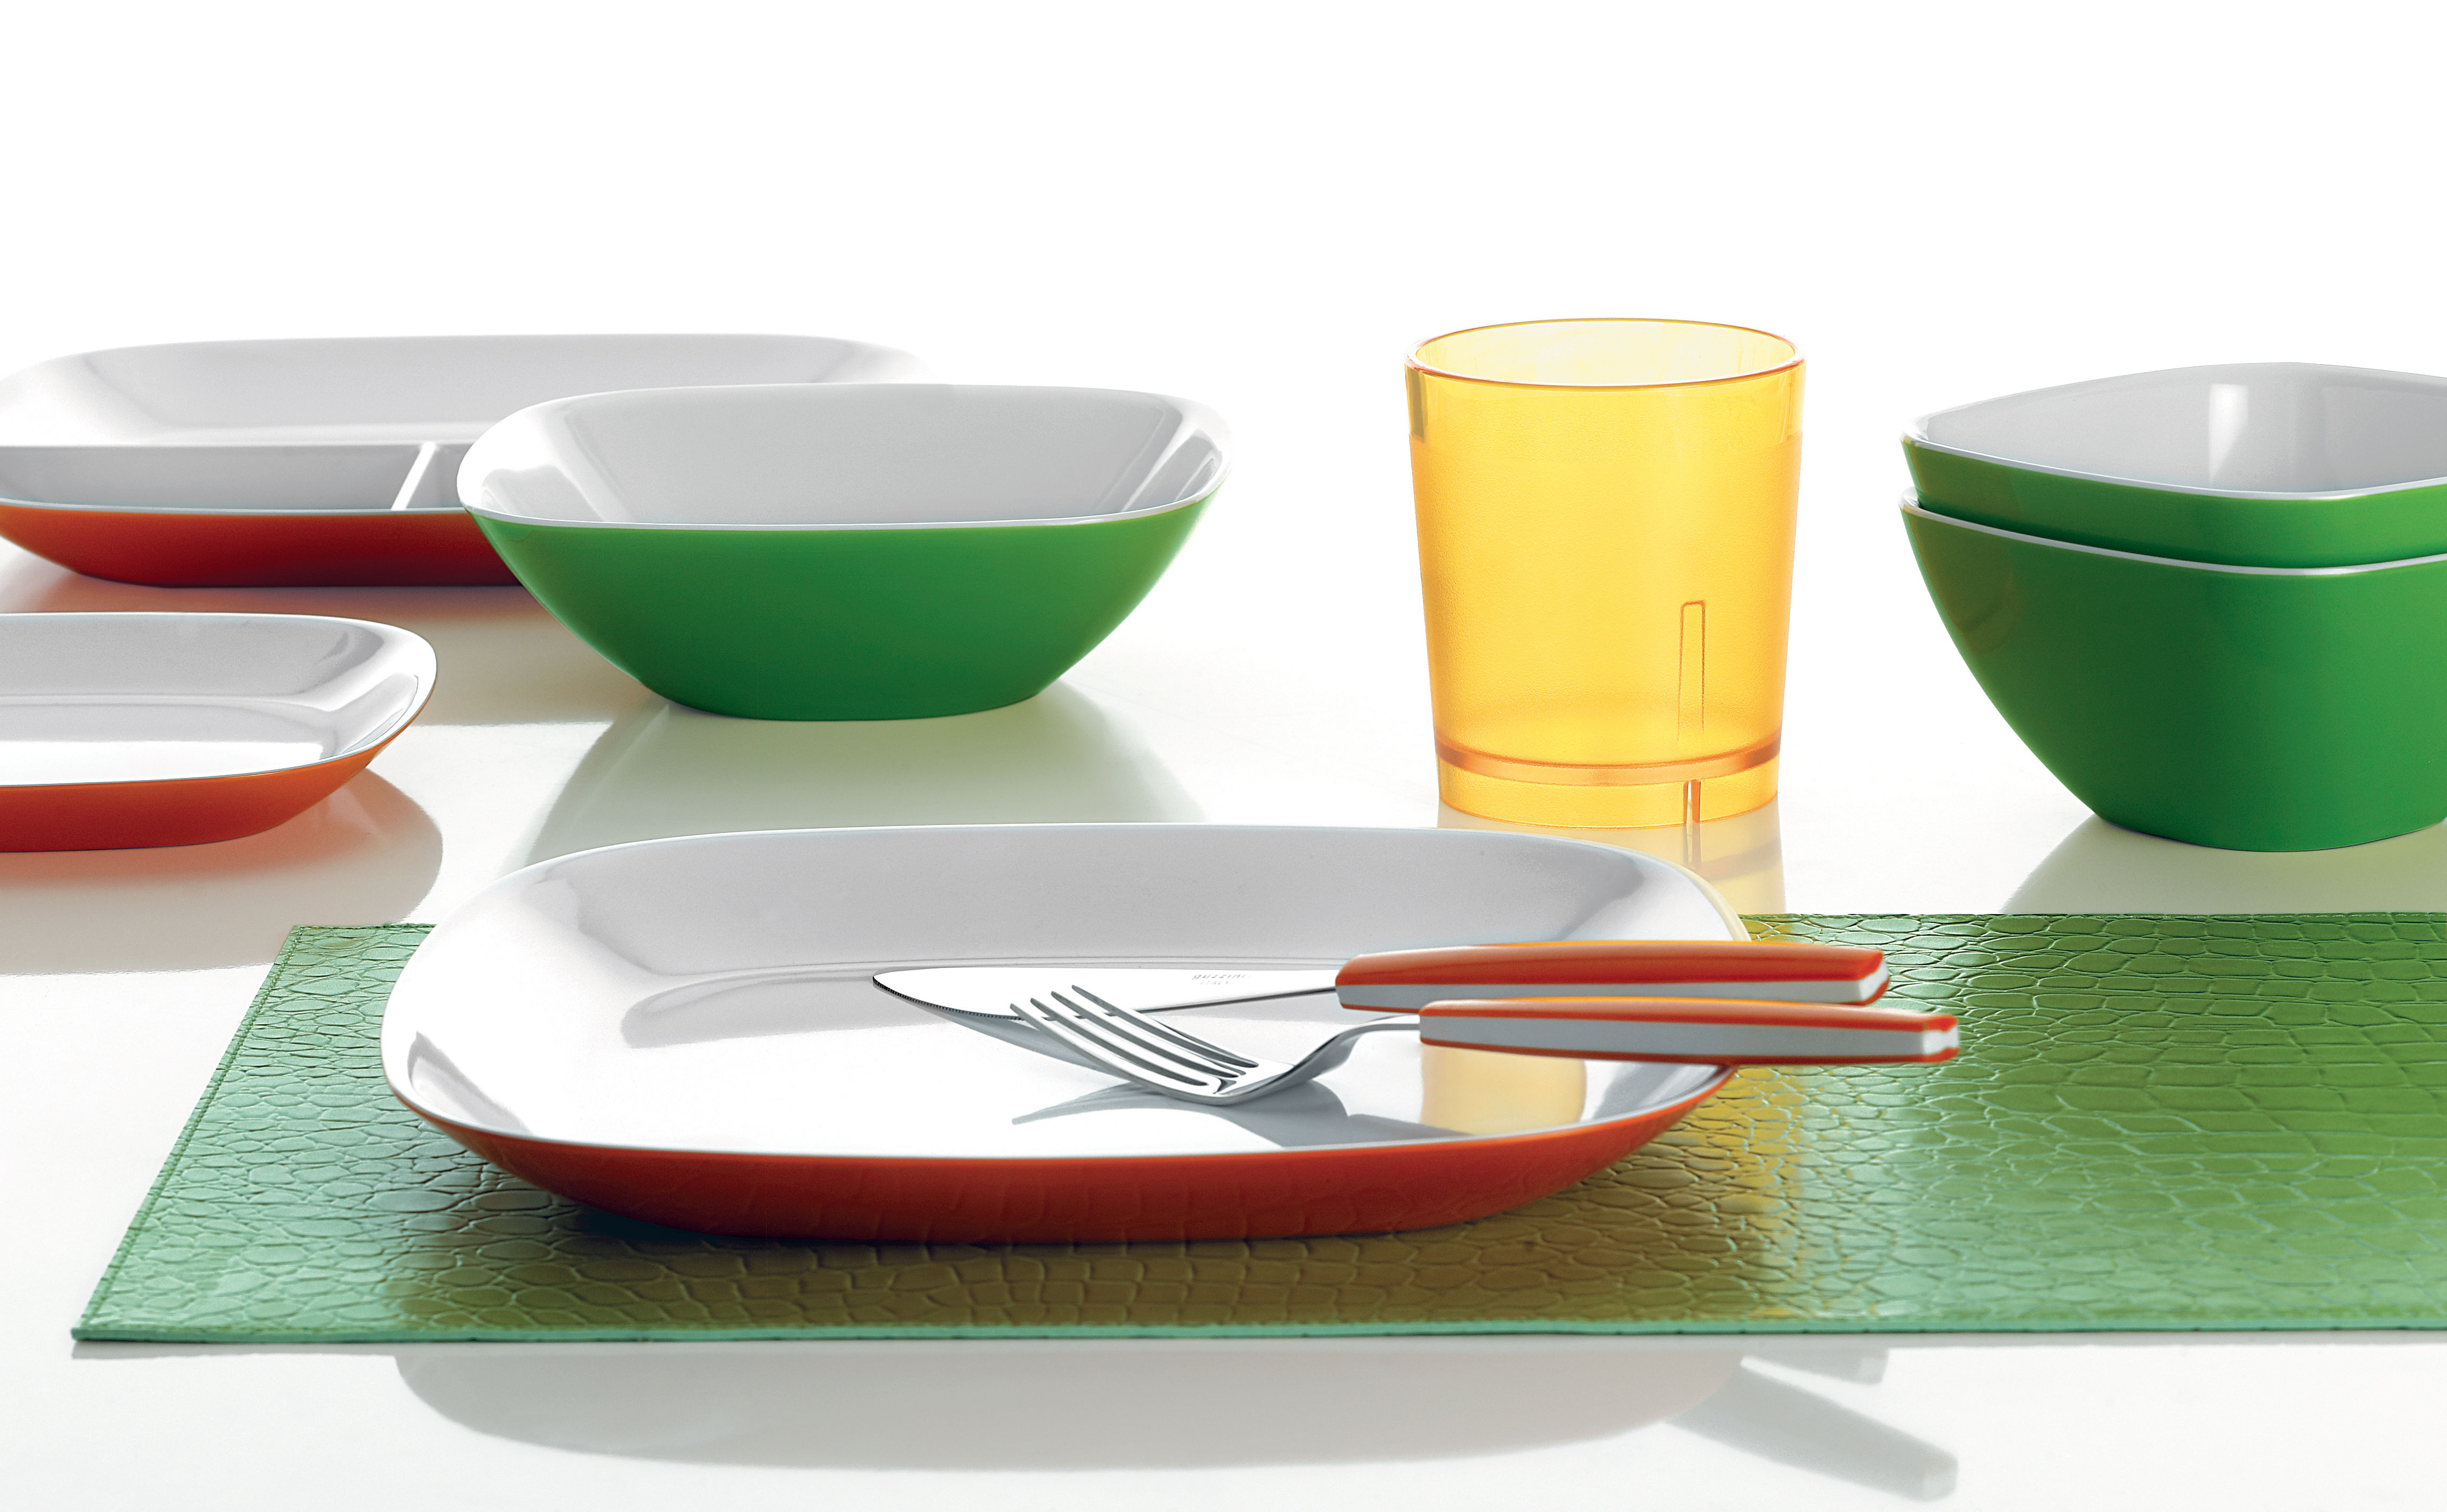 feeling kitchen cupboard   pieces of cutlery green by guzzini - zoom